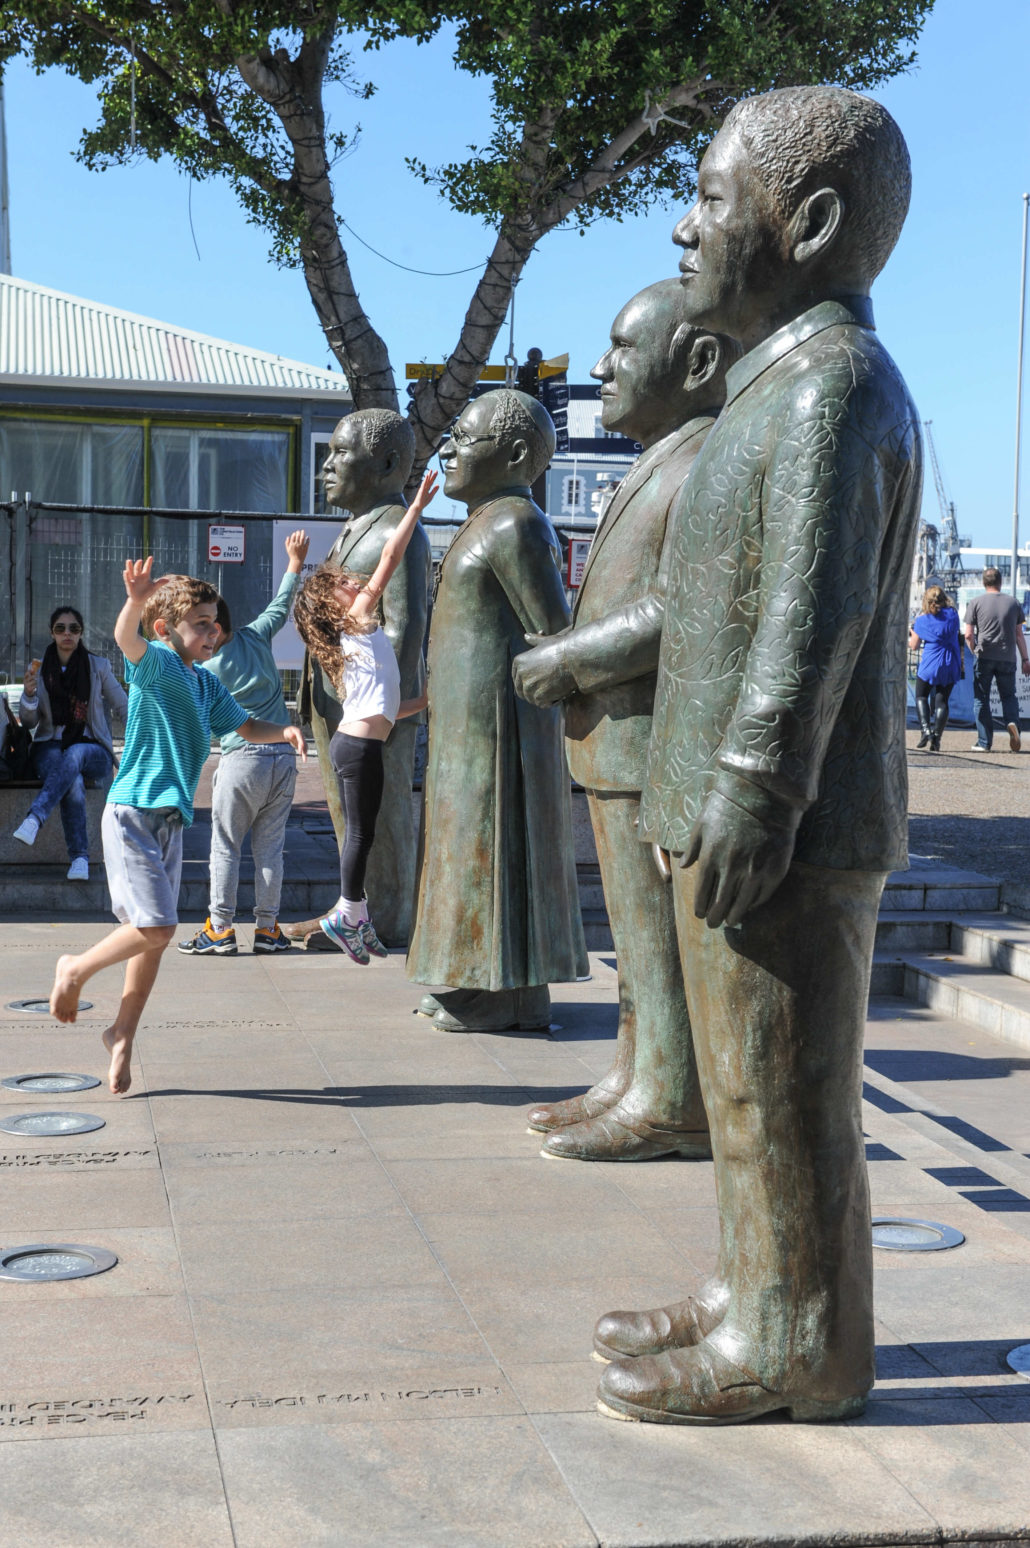 Bronze statues of four men who collectively brought down apartheid peacefully stand in the Waterfront